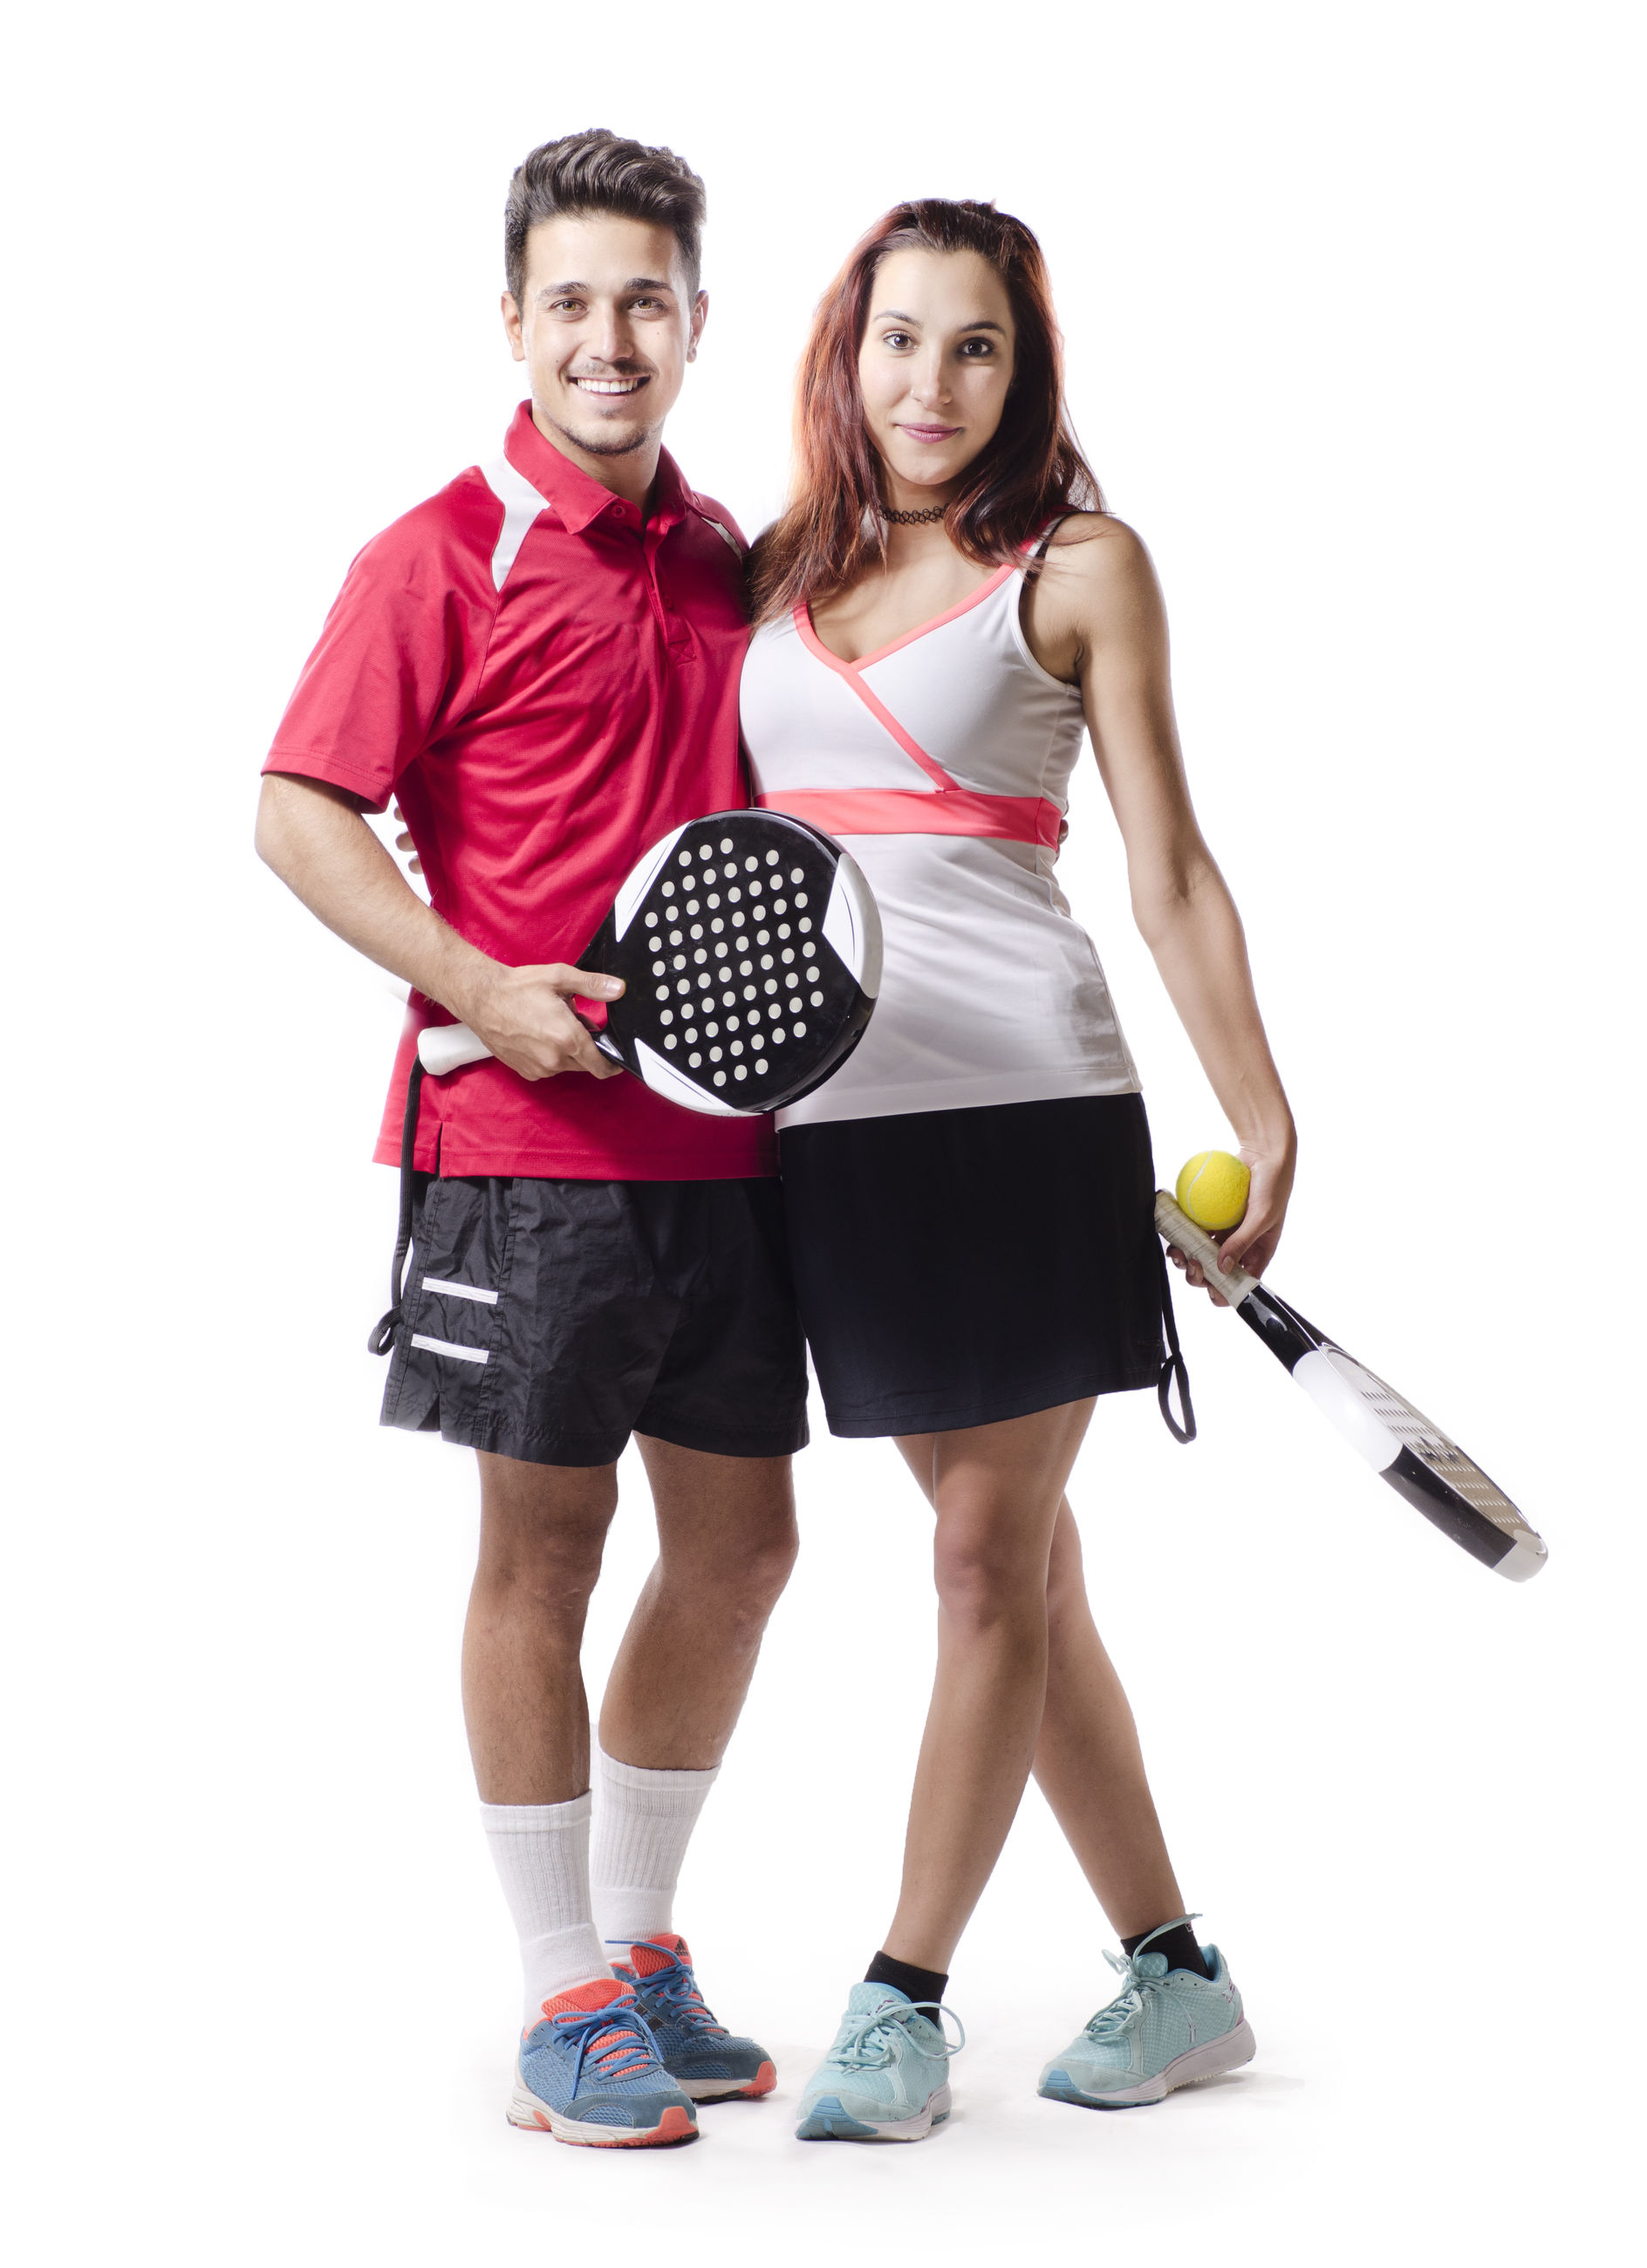 Portrait of paddle tennis players standing against white background